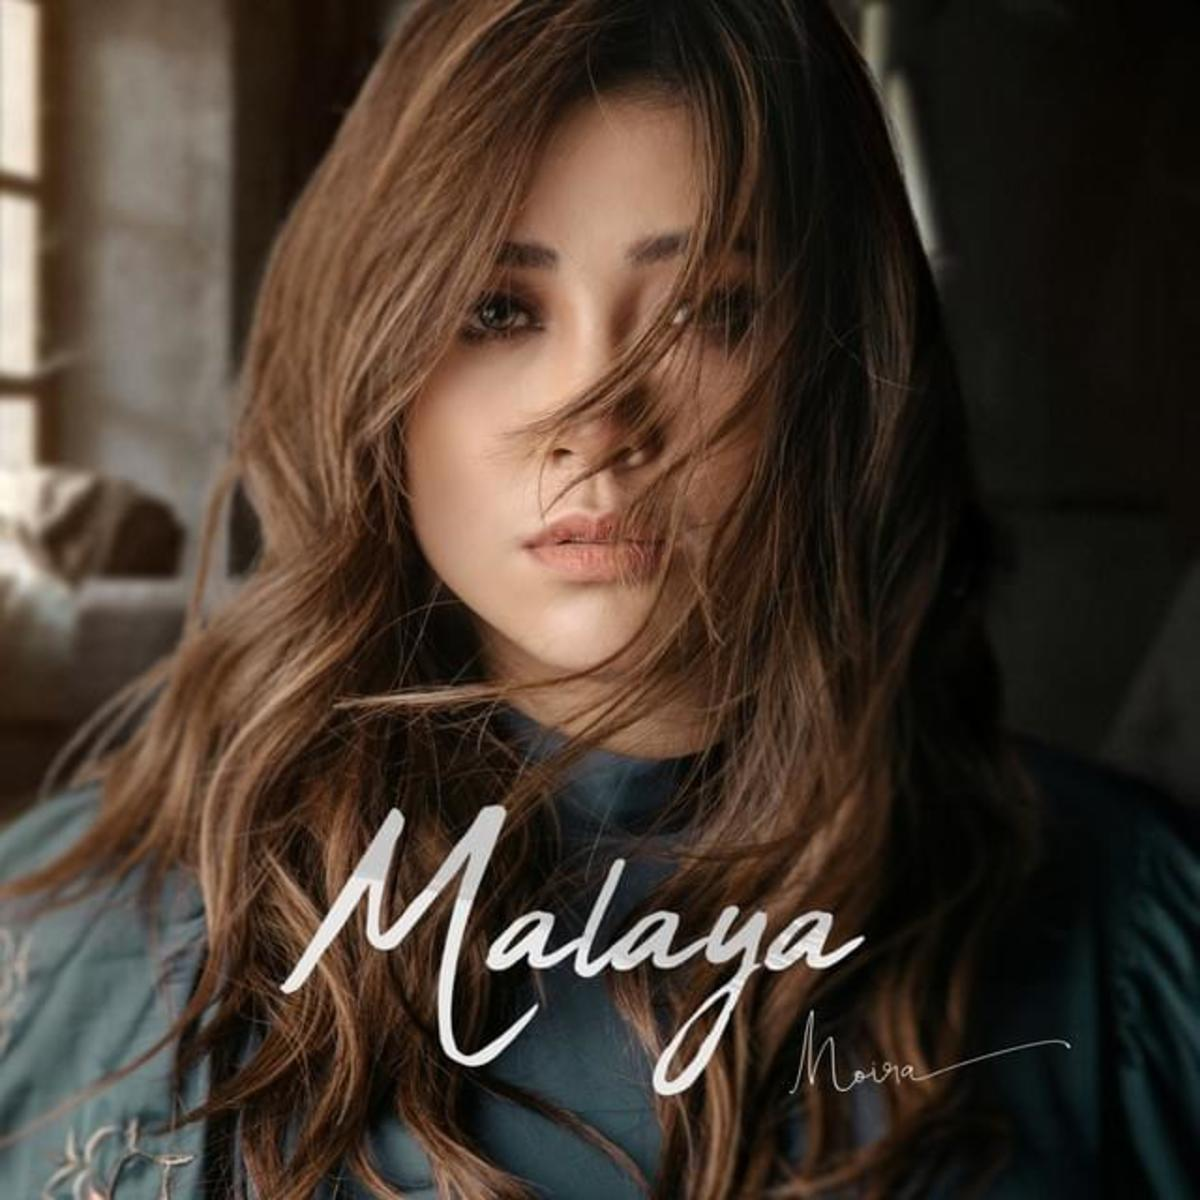 """Malaya"" album cover."